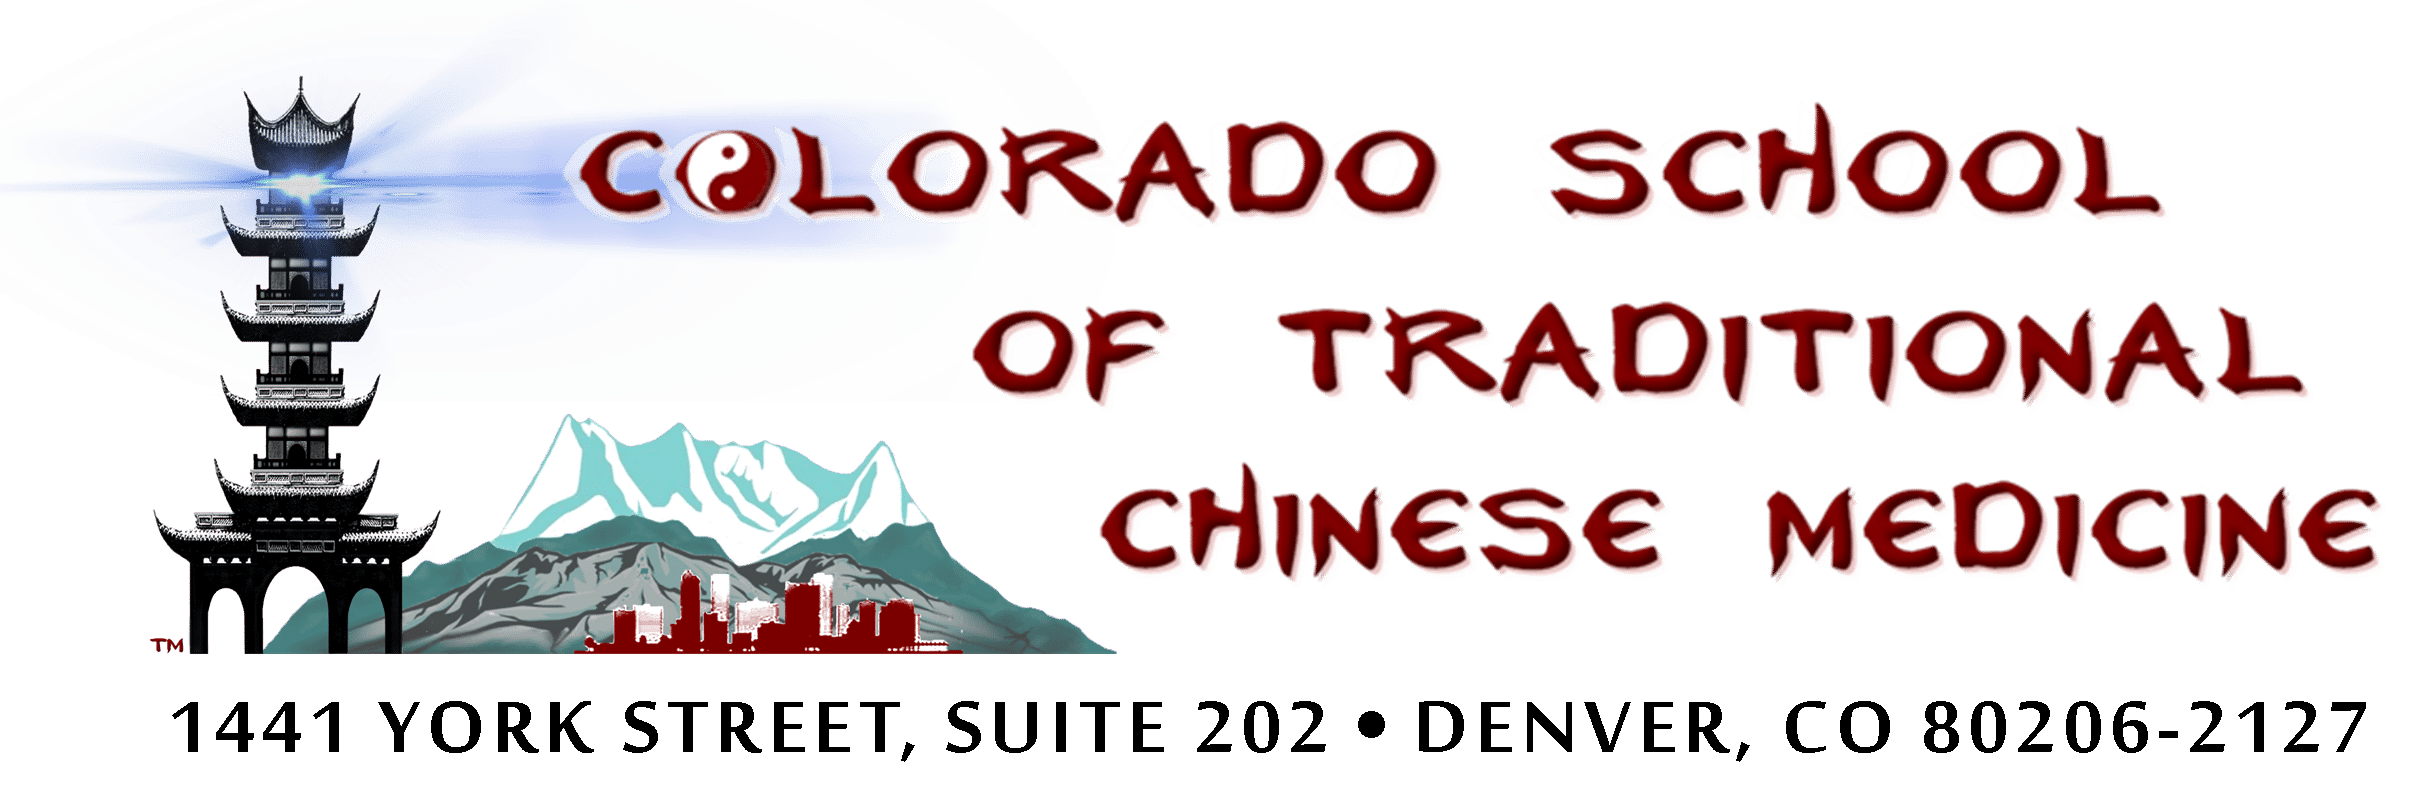 Colorado School of Traditional Chinese Medicine